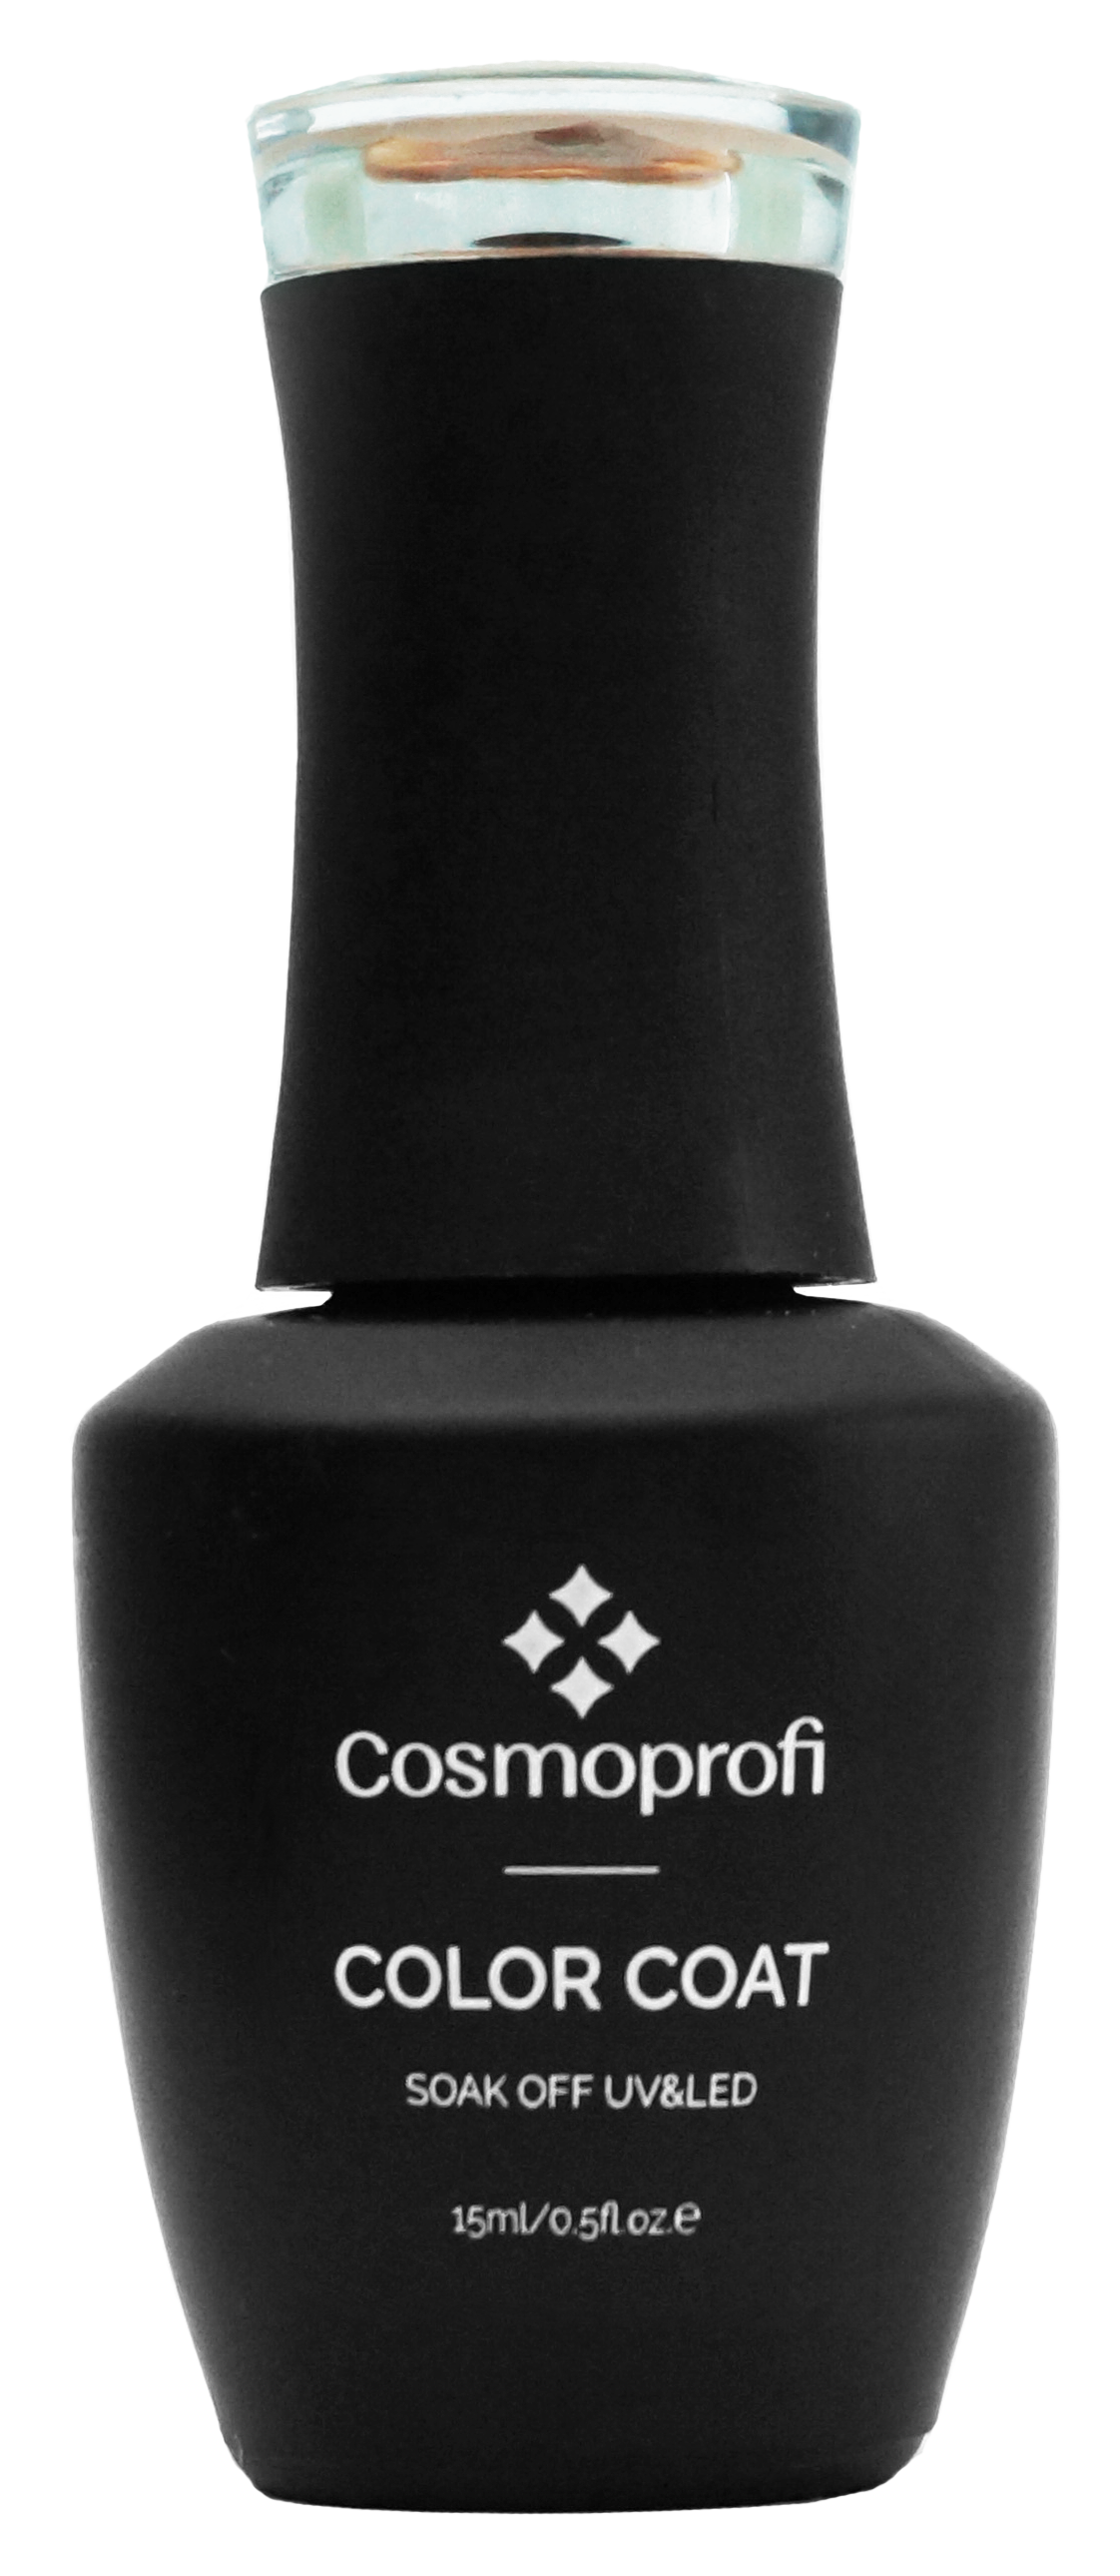 Гель-лак Cosmoprofi, Color coat № 93, 15 мл